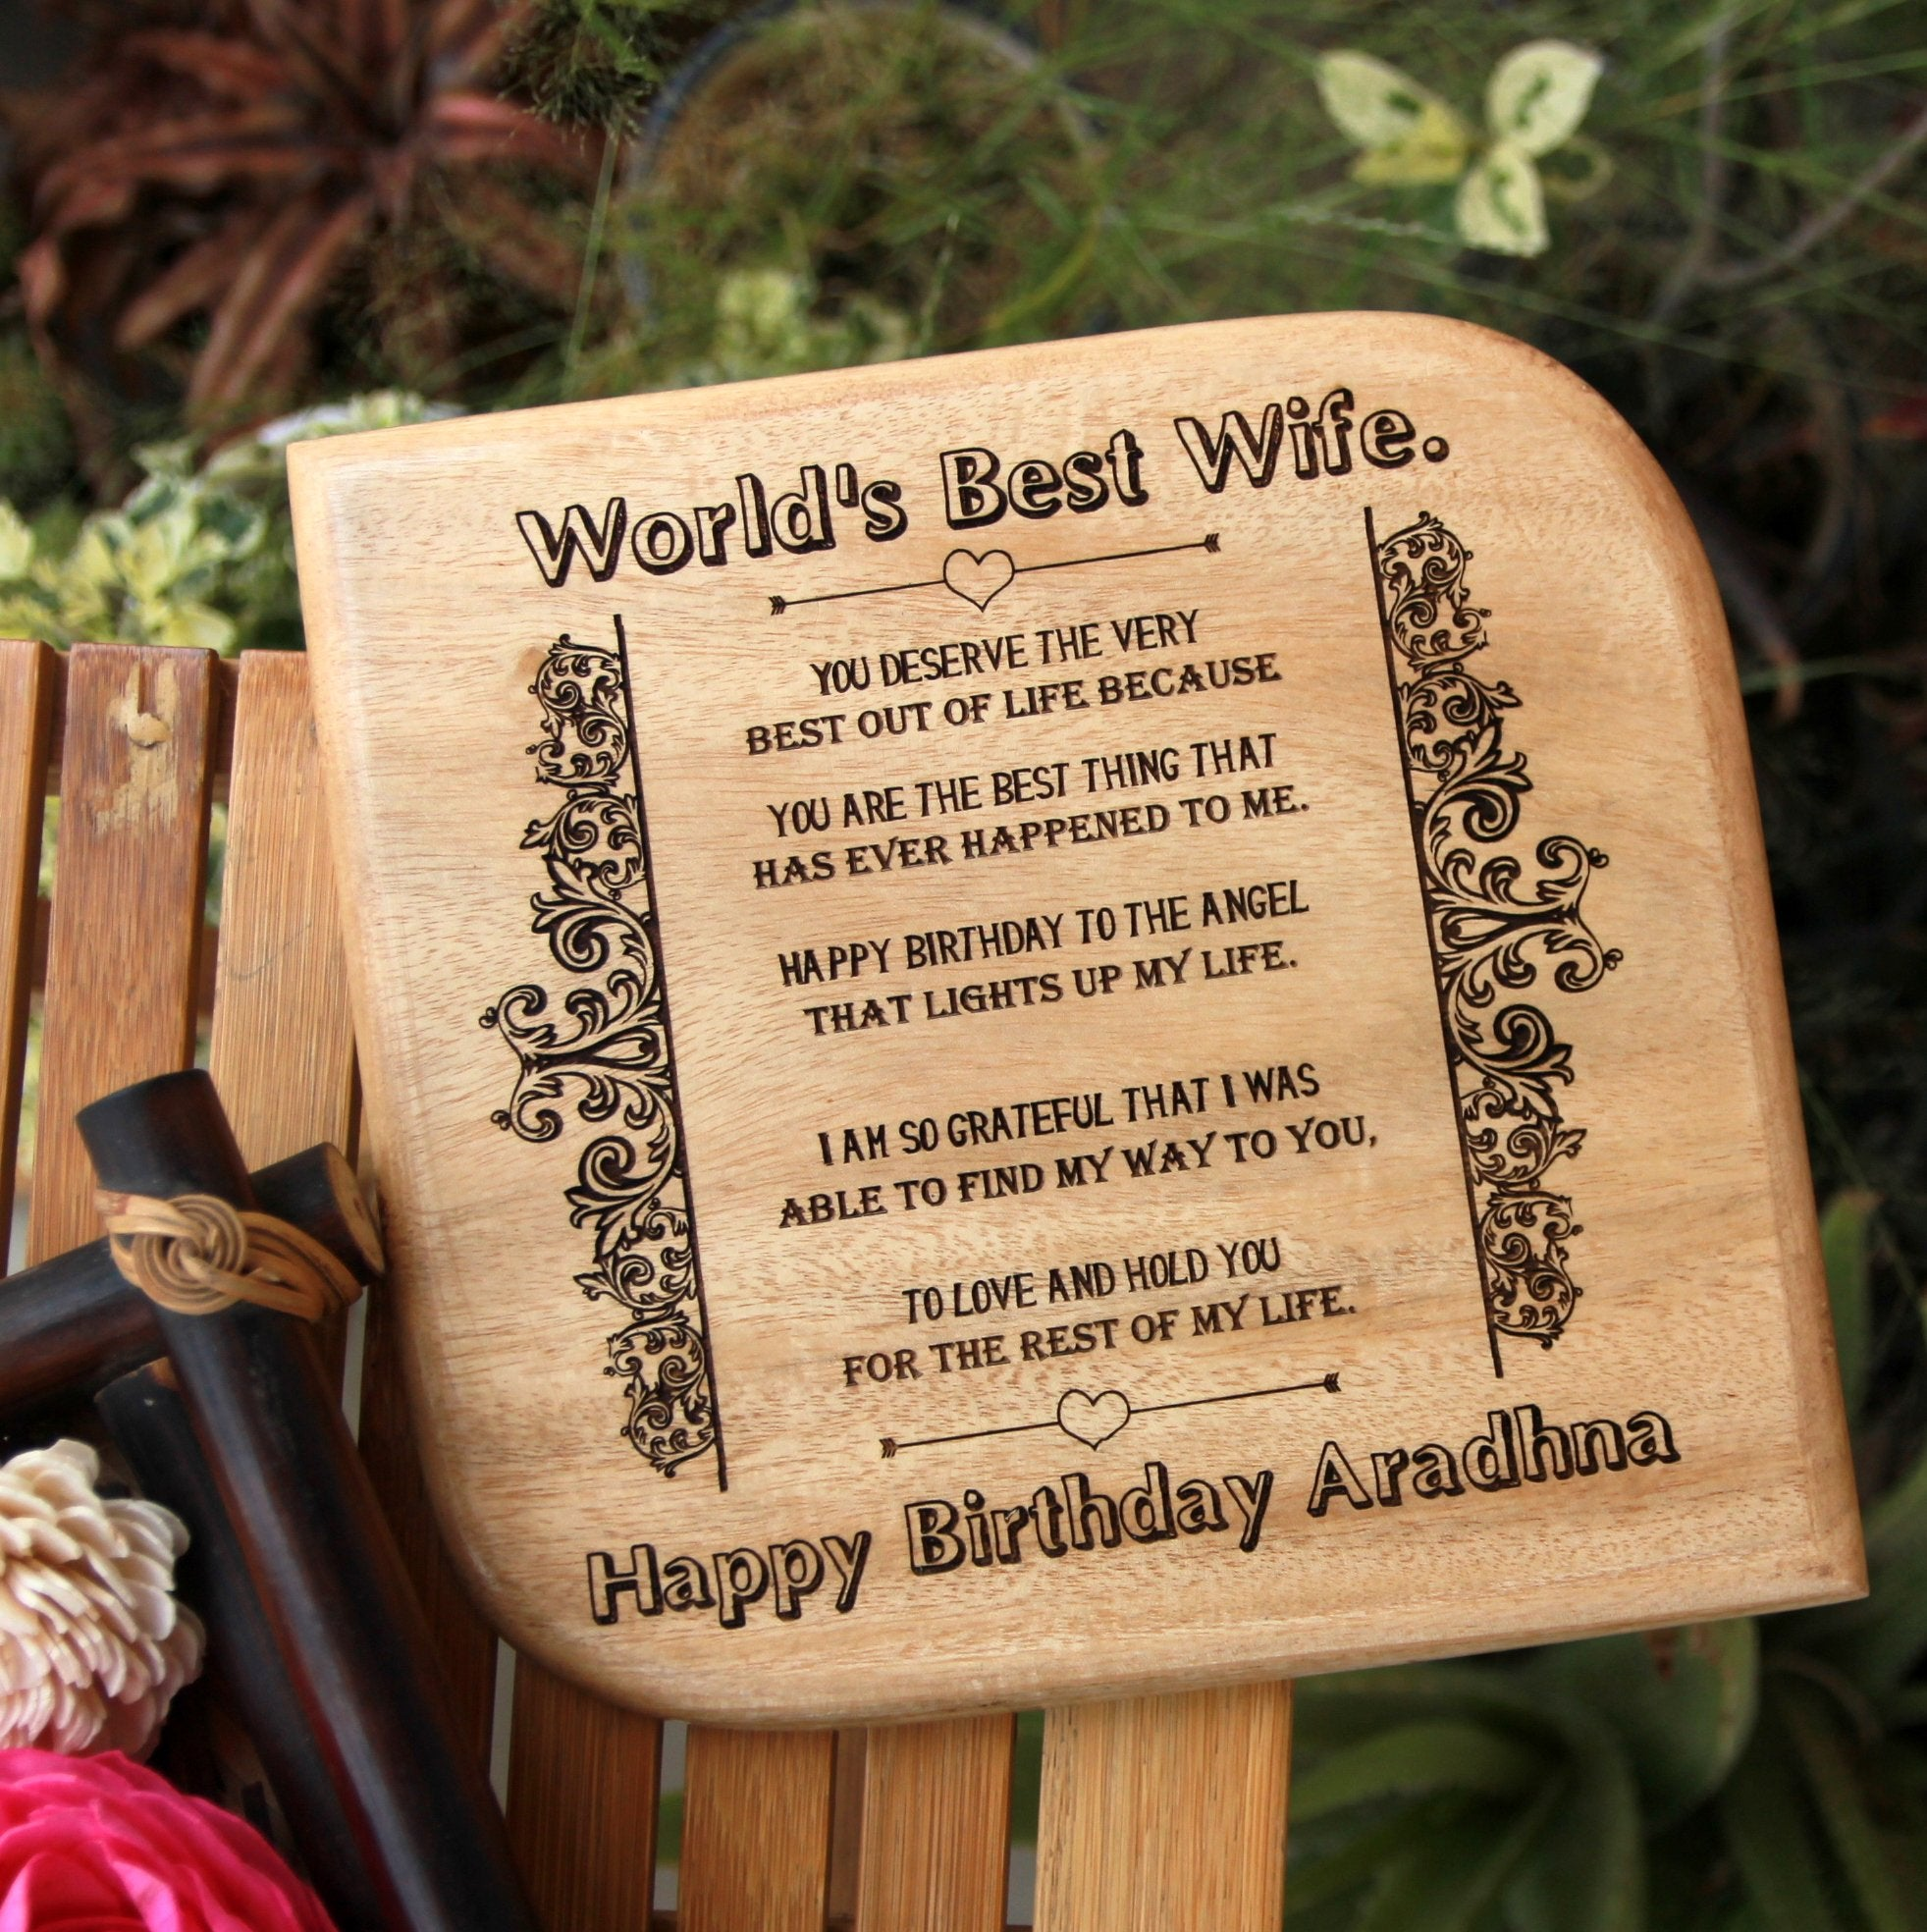 A Personalized Wooden Plaque For The World's Best Wife On Her Birthday